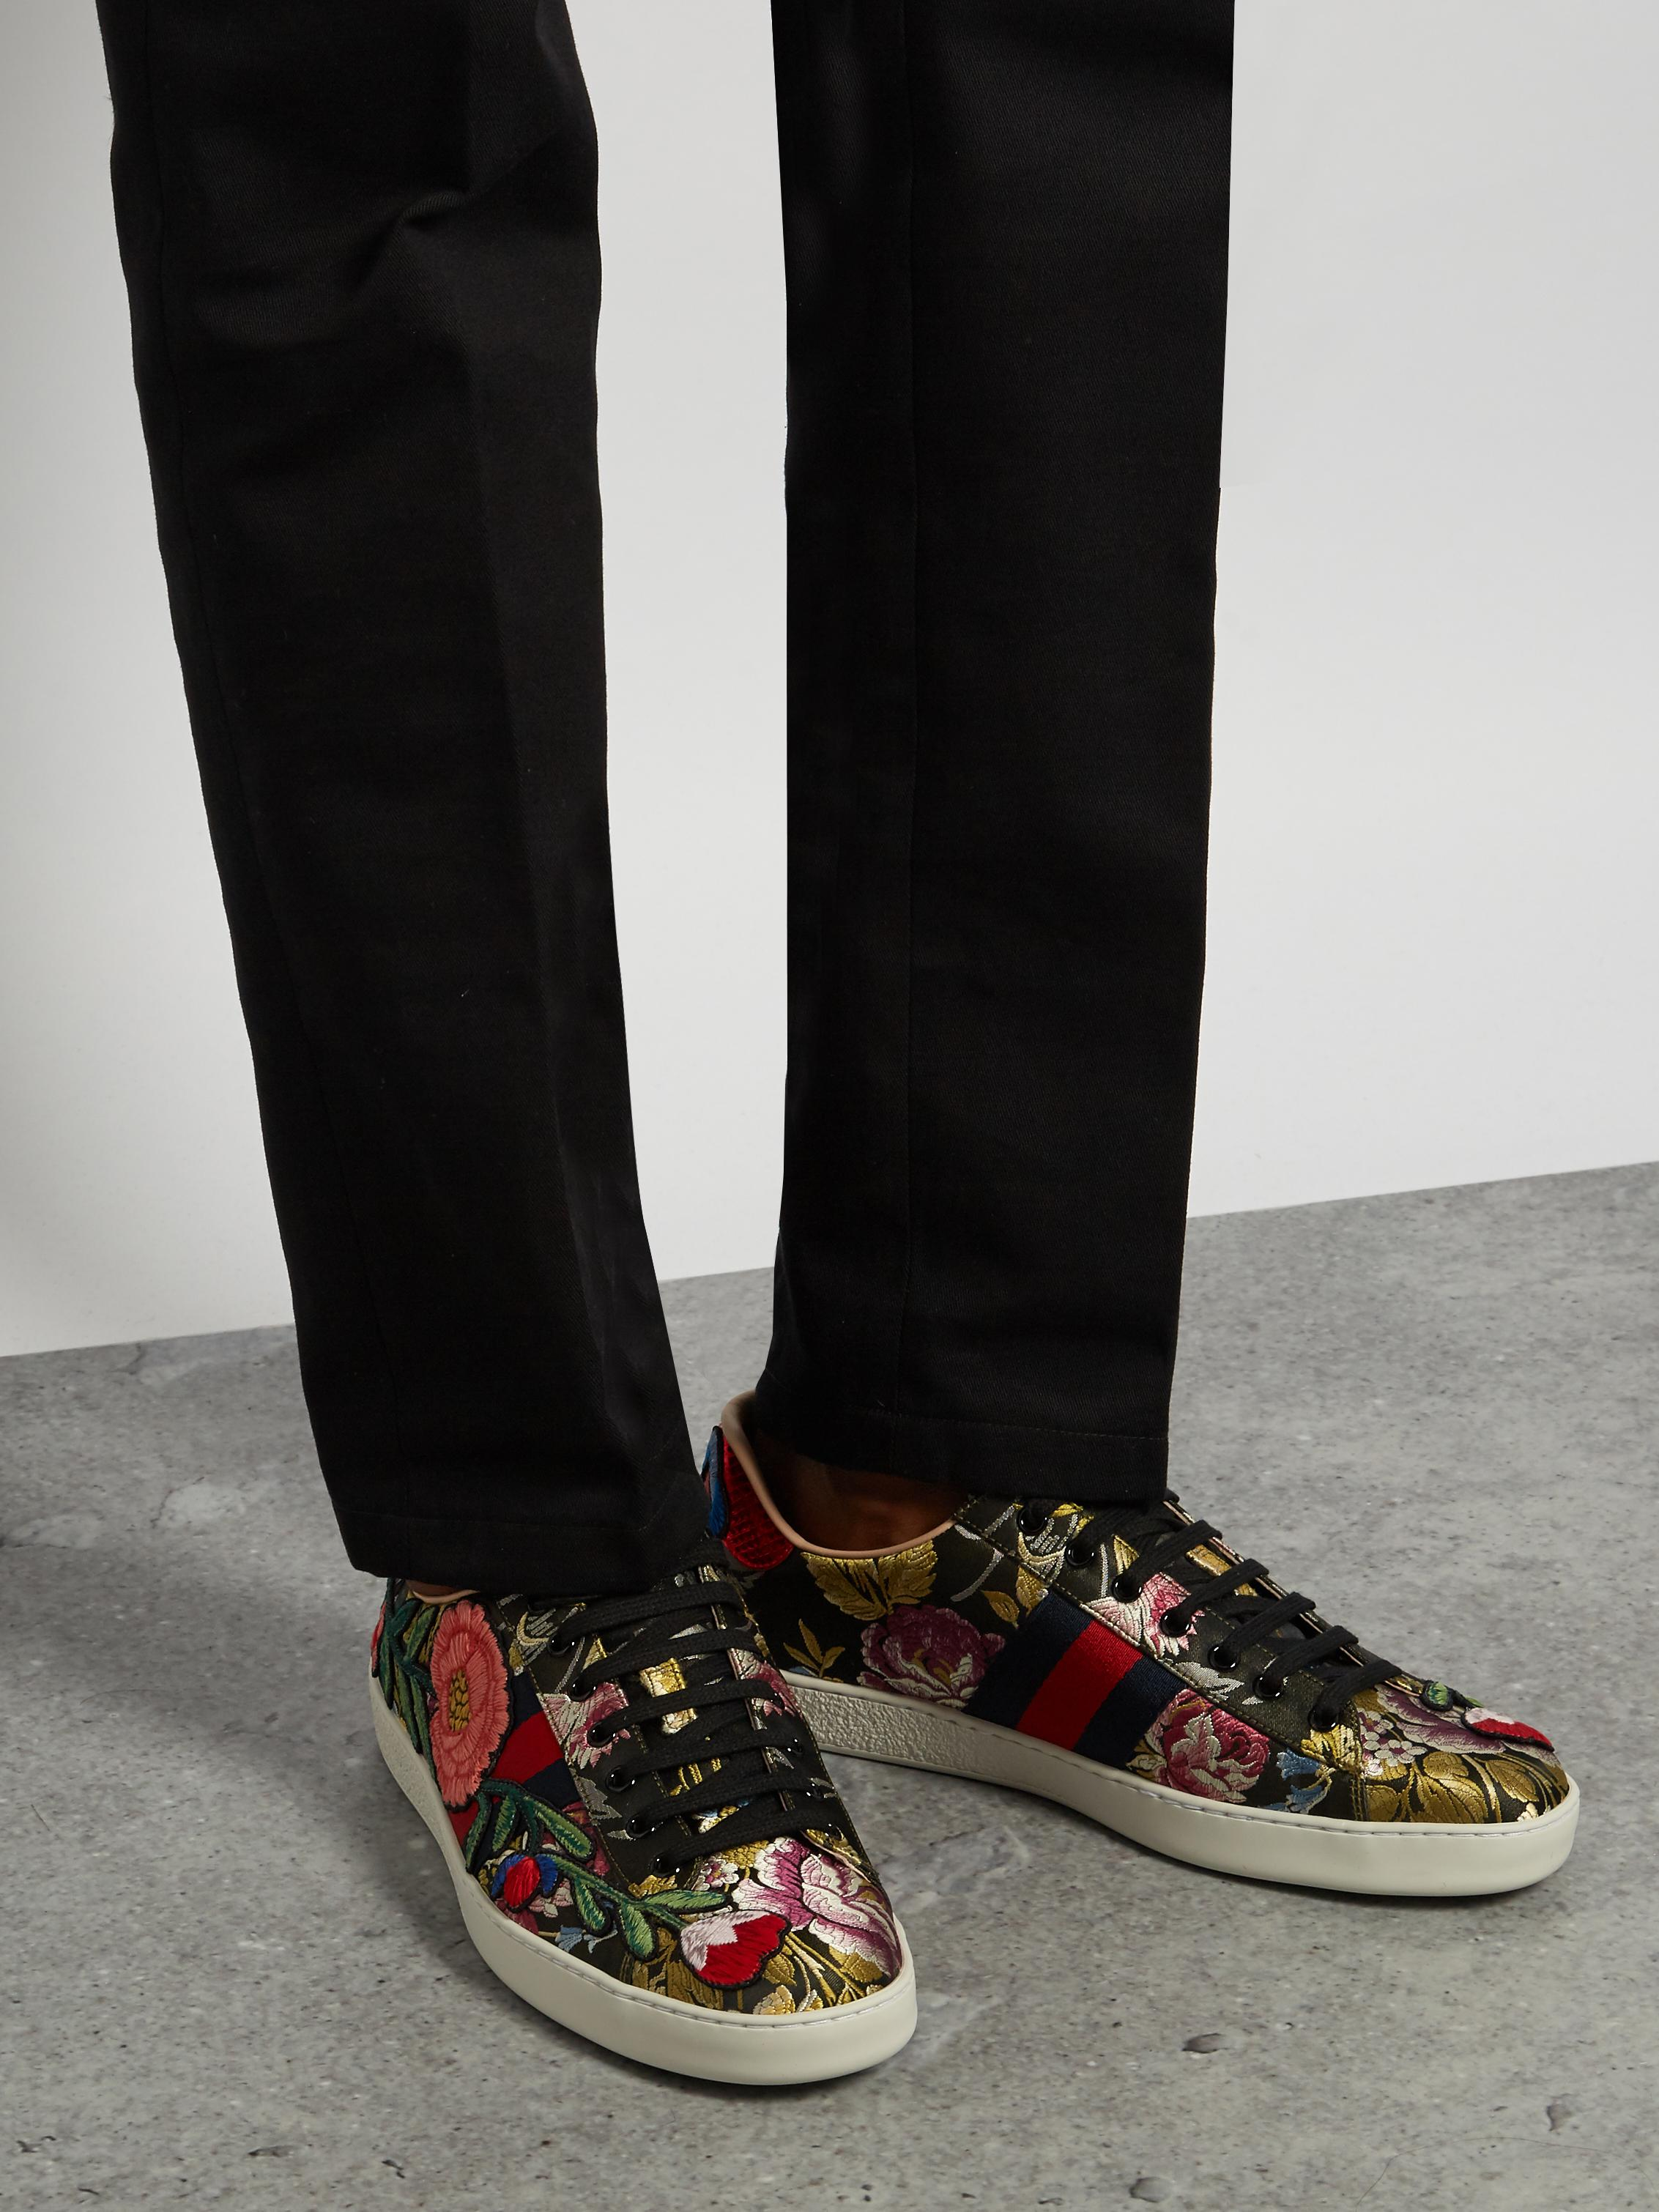 34ec9c5a219 Lyst - Gucci Ace Low-top Floral-jacquard Trainers in Black for Men